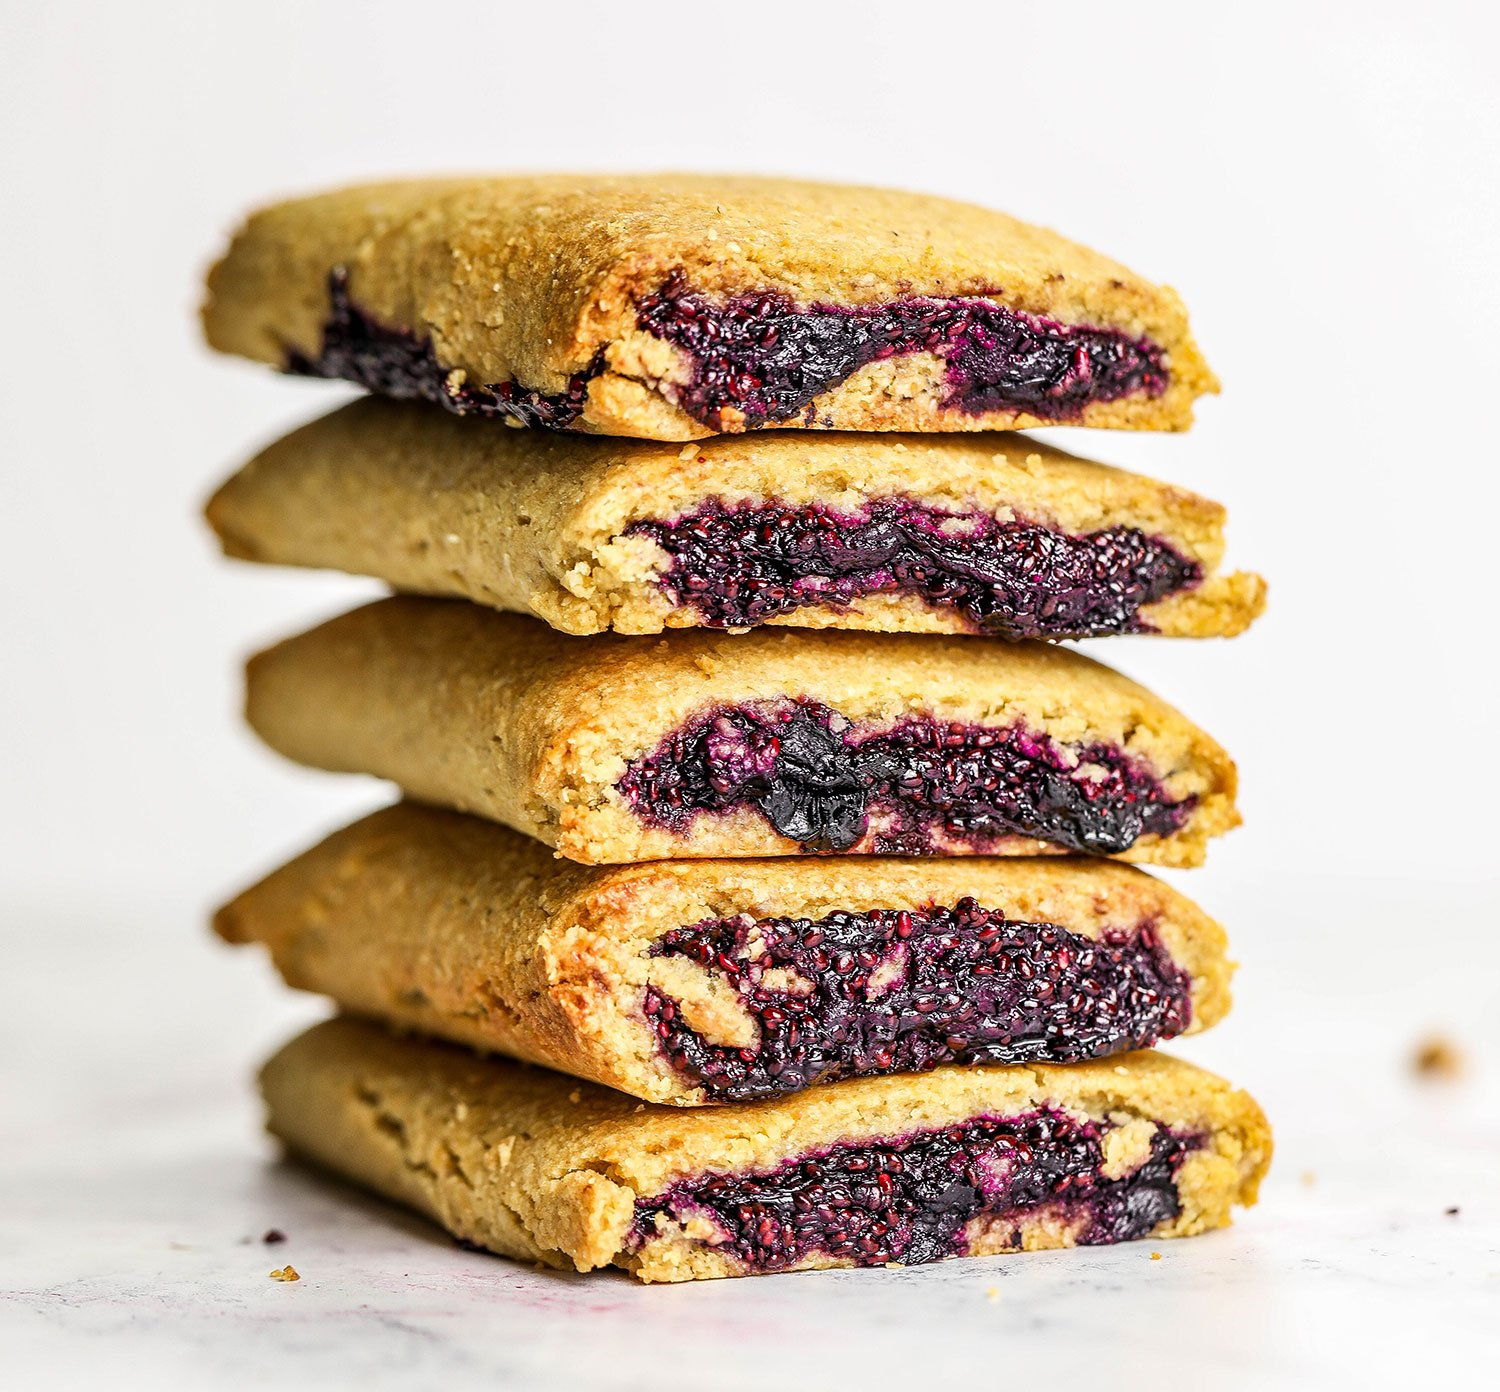 Blueberry Filled Baked Bars